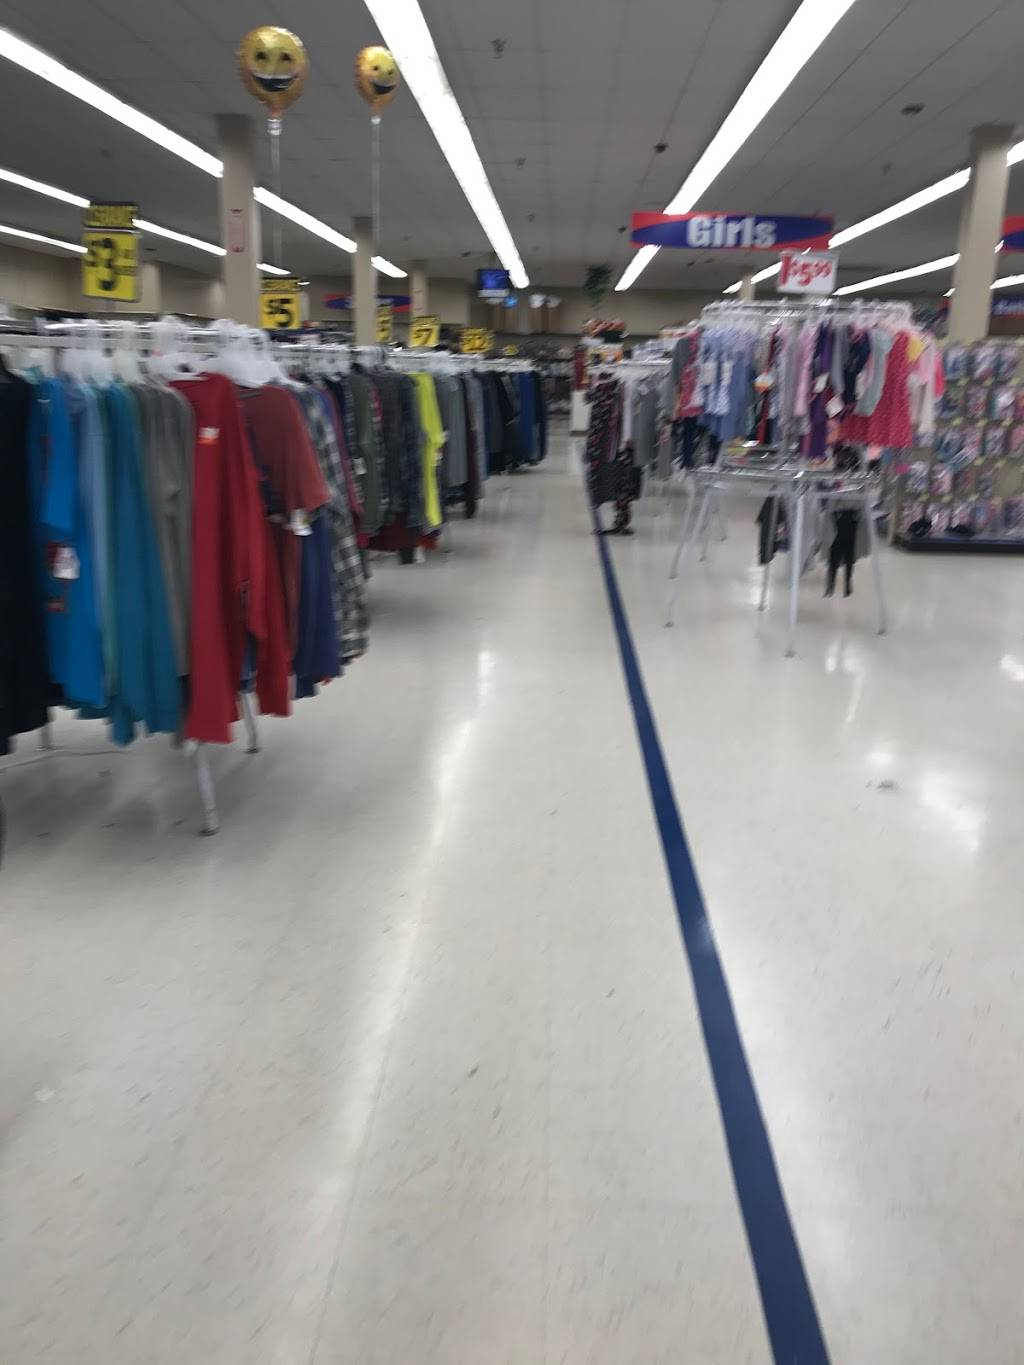 Roses Discount Store - electronics store  | Photo 4 of 10 | Address: 2927 Freedom Dr, Charlotte, NC 28208, USA | Phone: (704) 394-4851